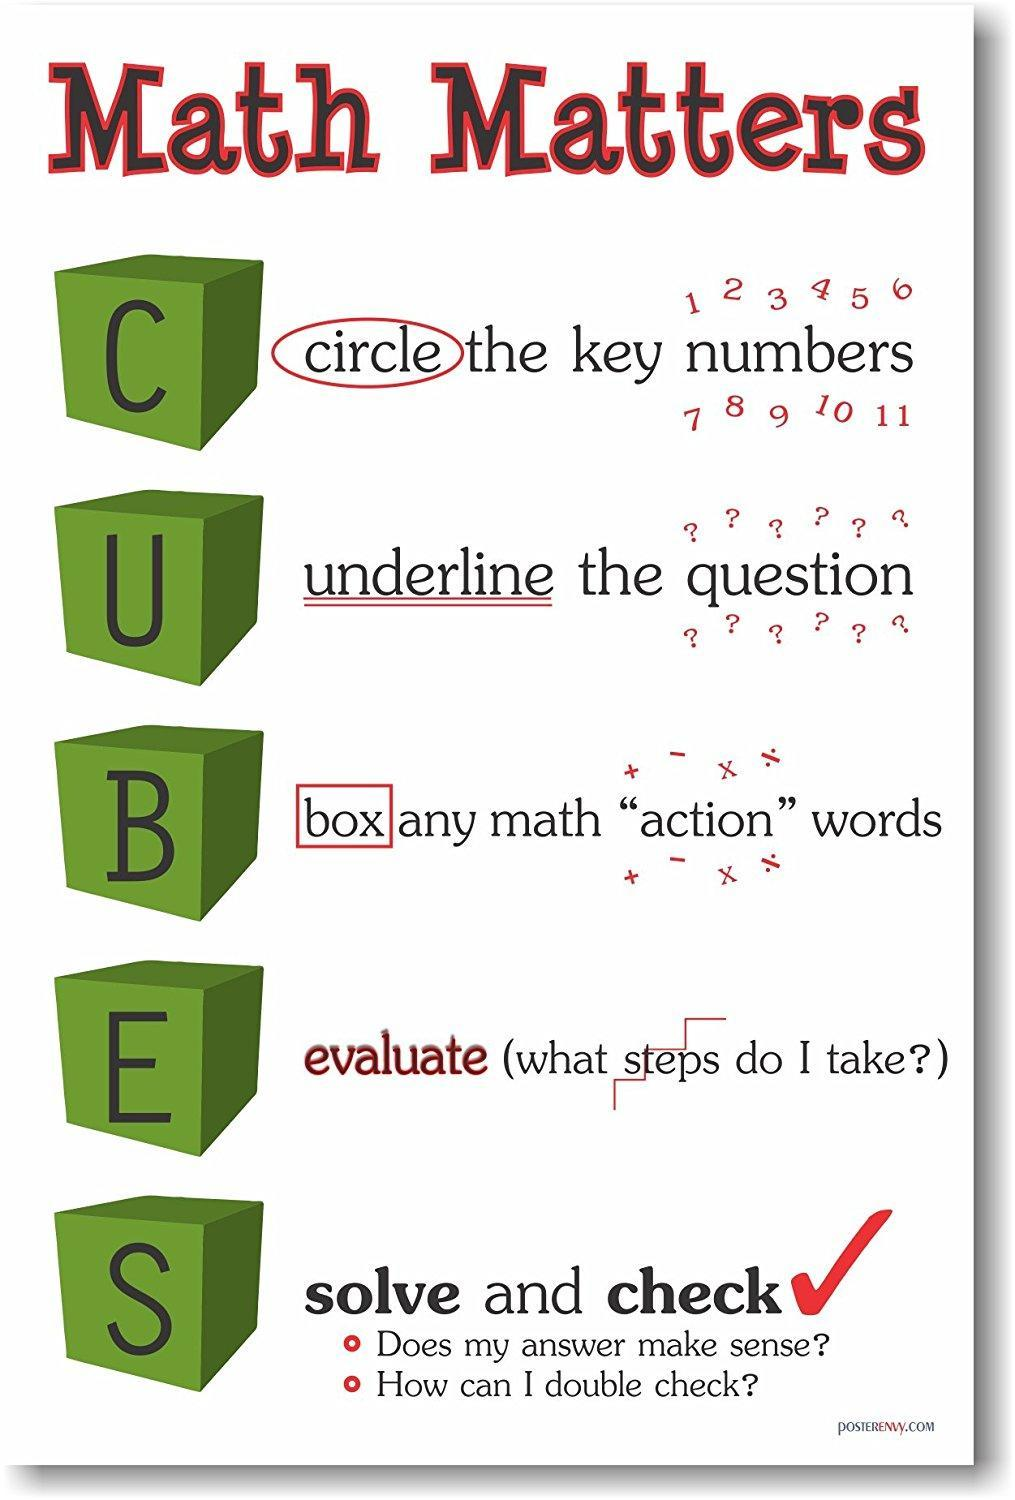 Math Matters - Cubes- Circle key numbers, Underline the question, Box any math action words, Evaluate, Solve and check